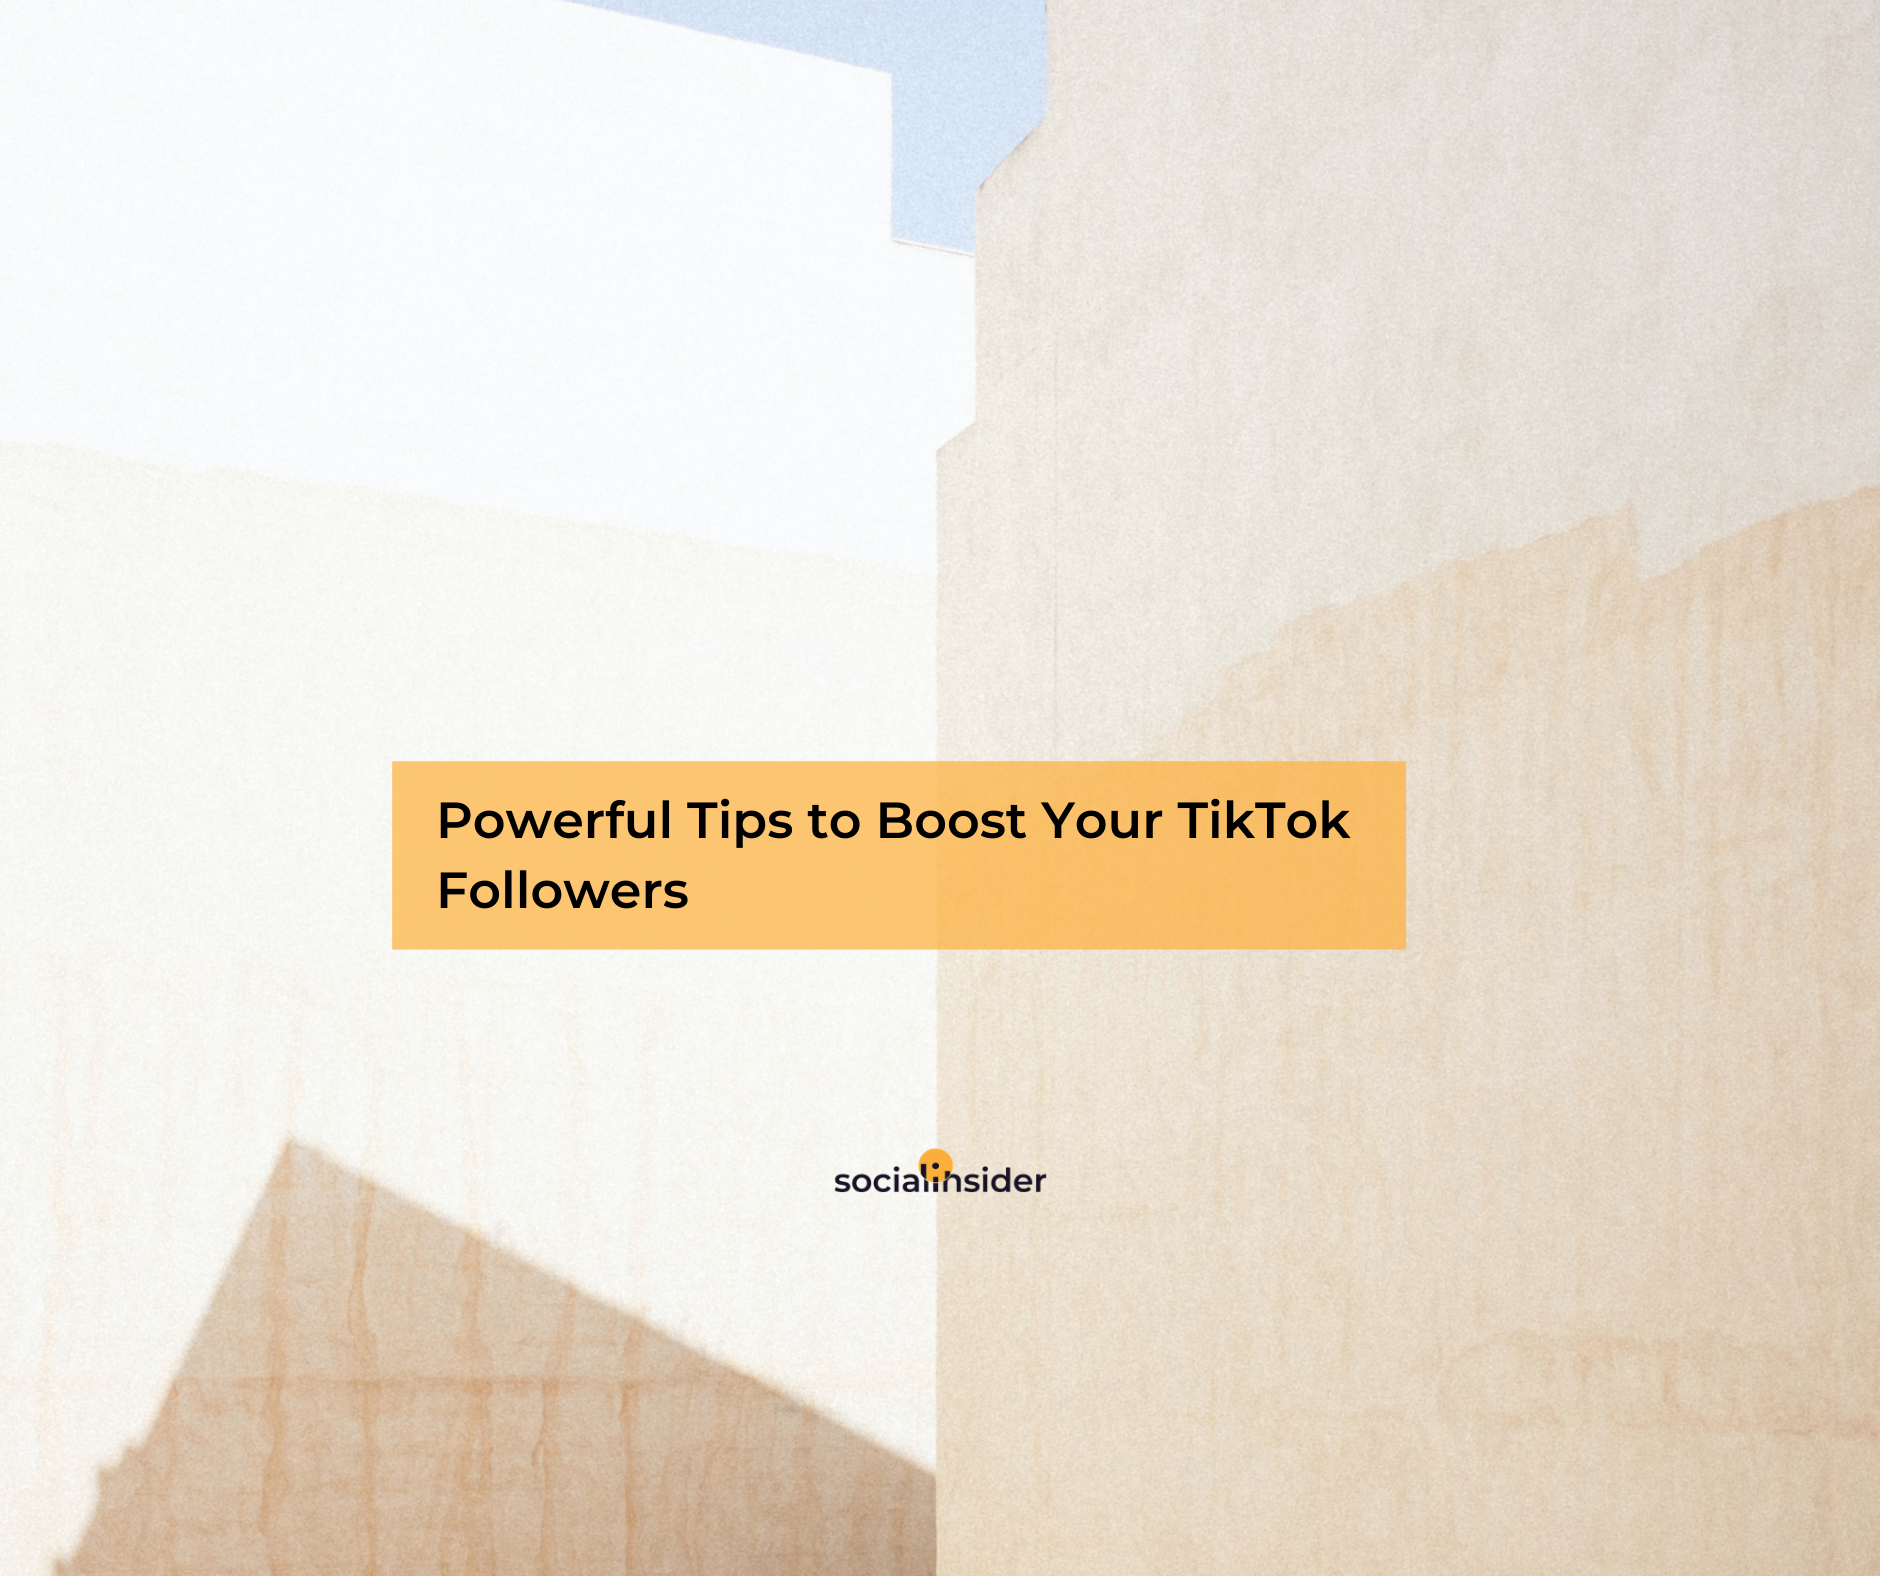 Powerful Tips To Boost Your Tiktok Followers In 2021